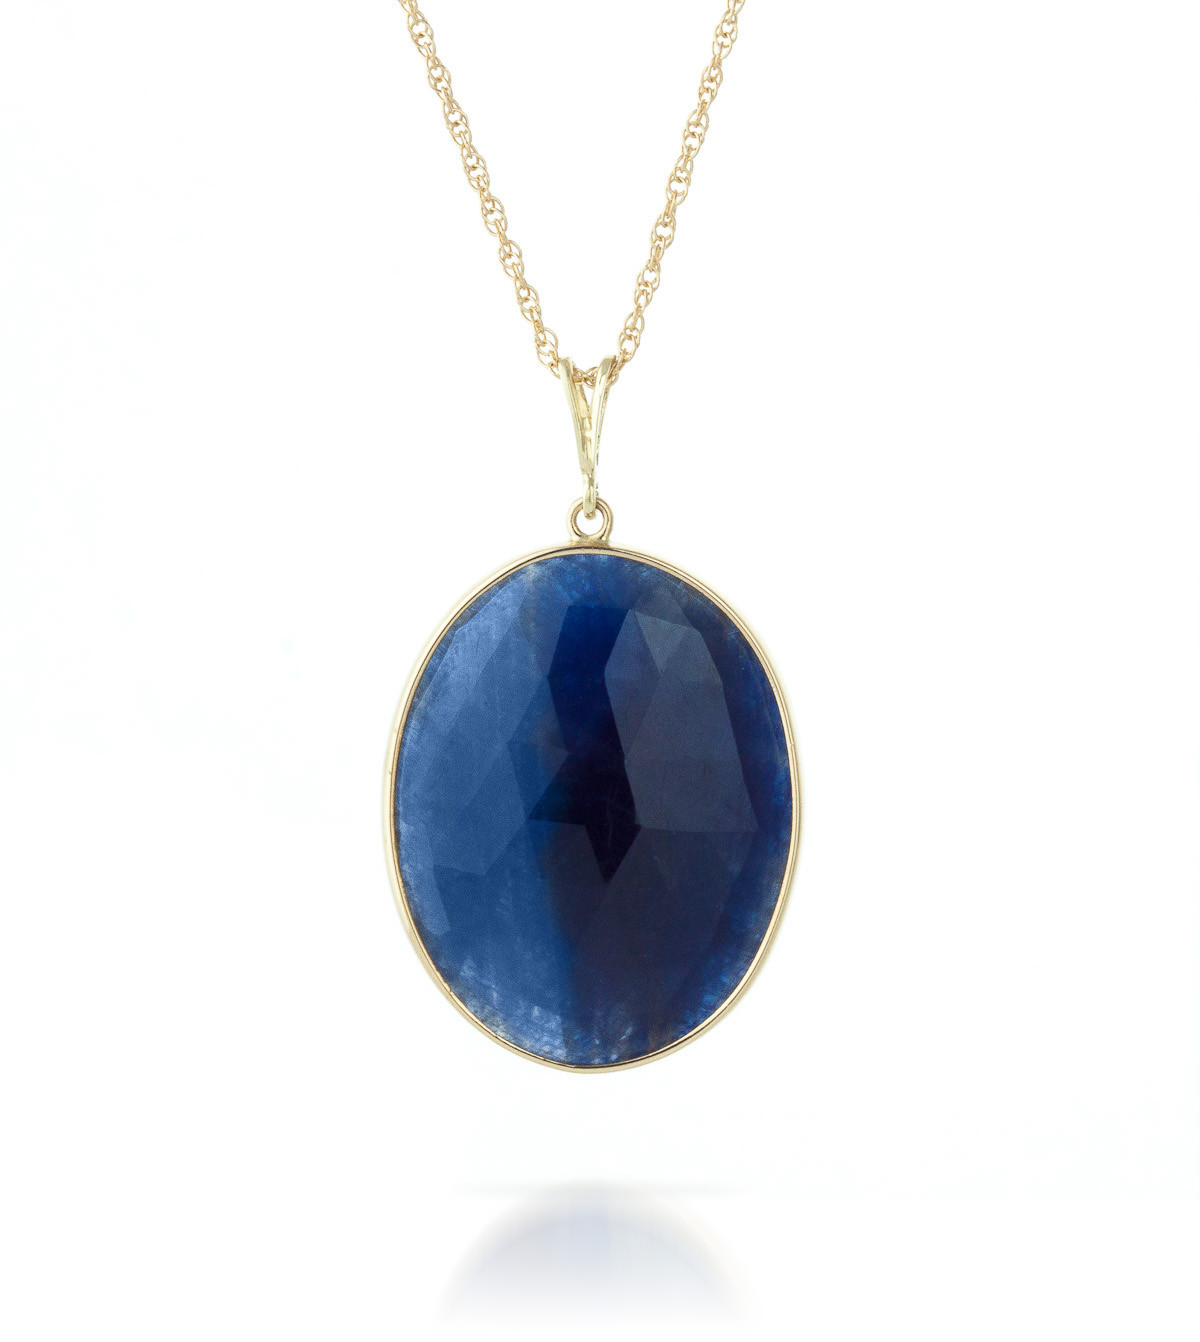 Oval Cut Sapphire Pendant Necklace 20 ct in 9ct Gold ...